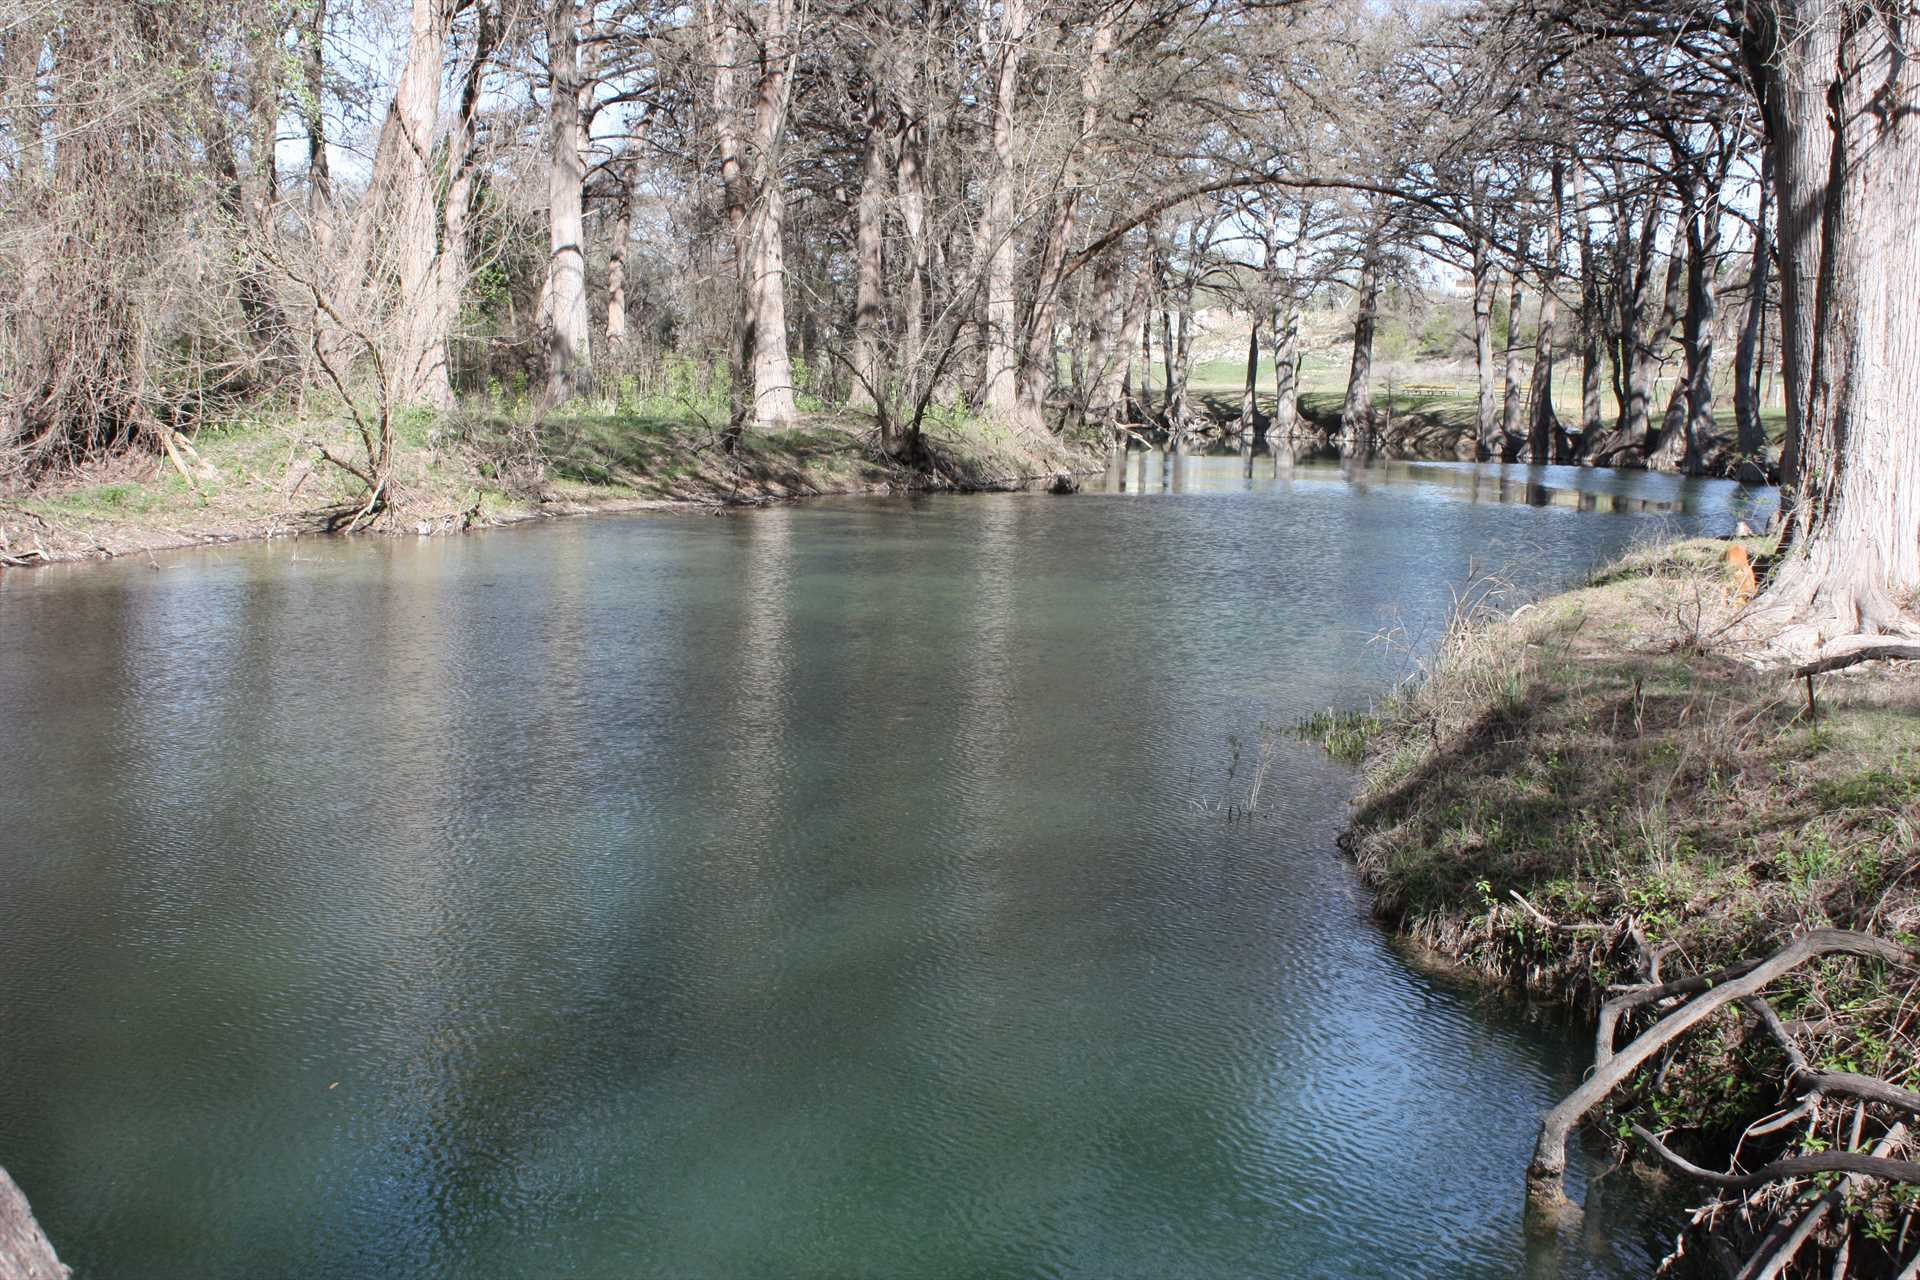 With the river in your backyard, you can fill your schedule with fishing, tubing, swimming, you name it!